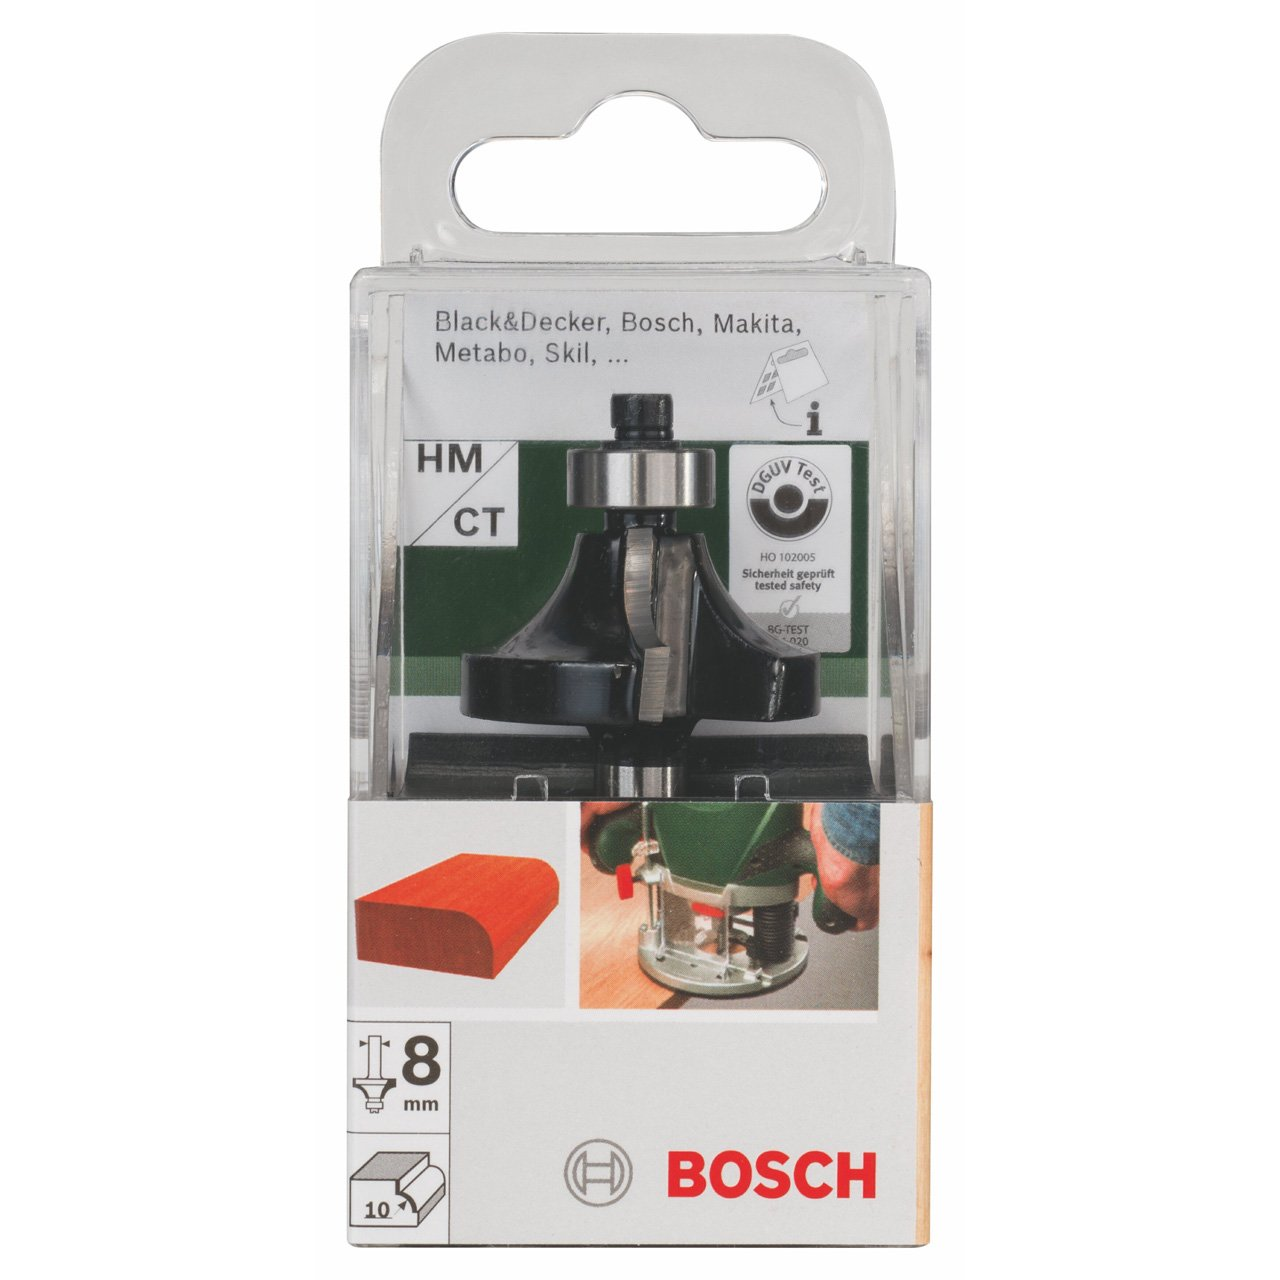 Bosch 2609256604 10mm Rounding Over Bit Two Flutes with Tungsten Carbide and Ball Bearing// 8mm Shank